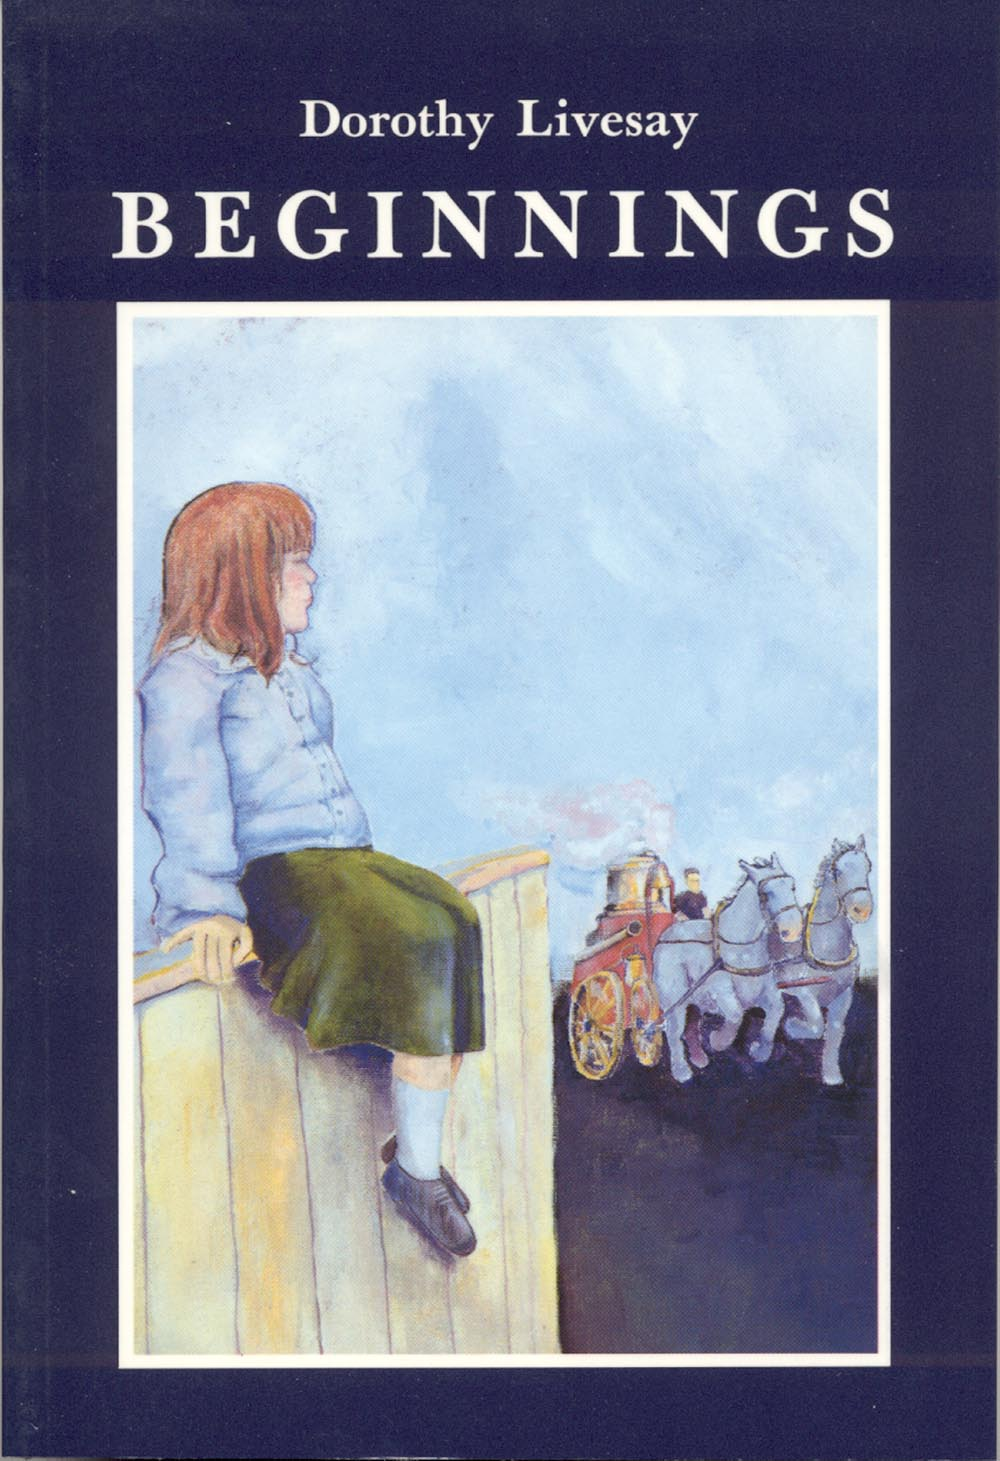 Beginnings by Dorothy Livesay